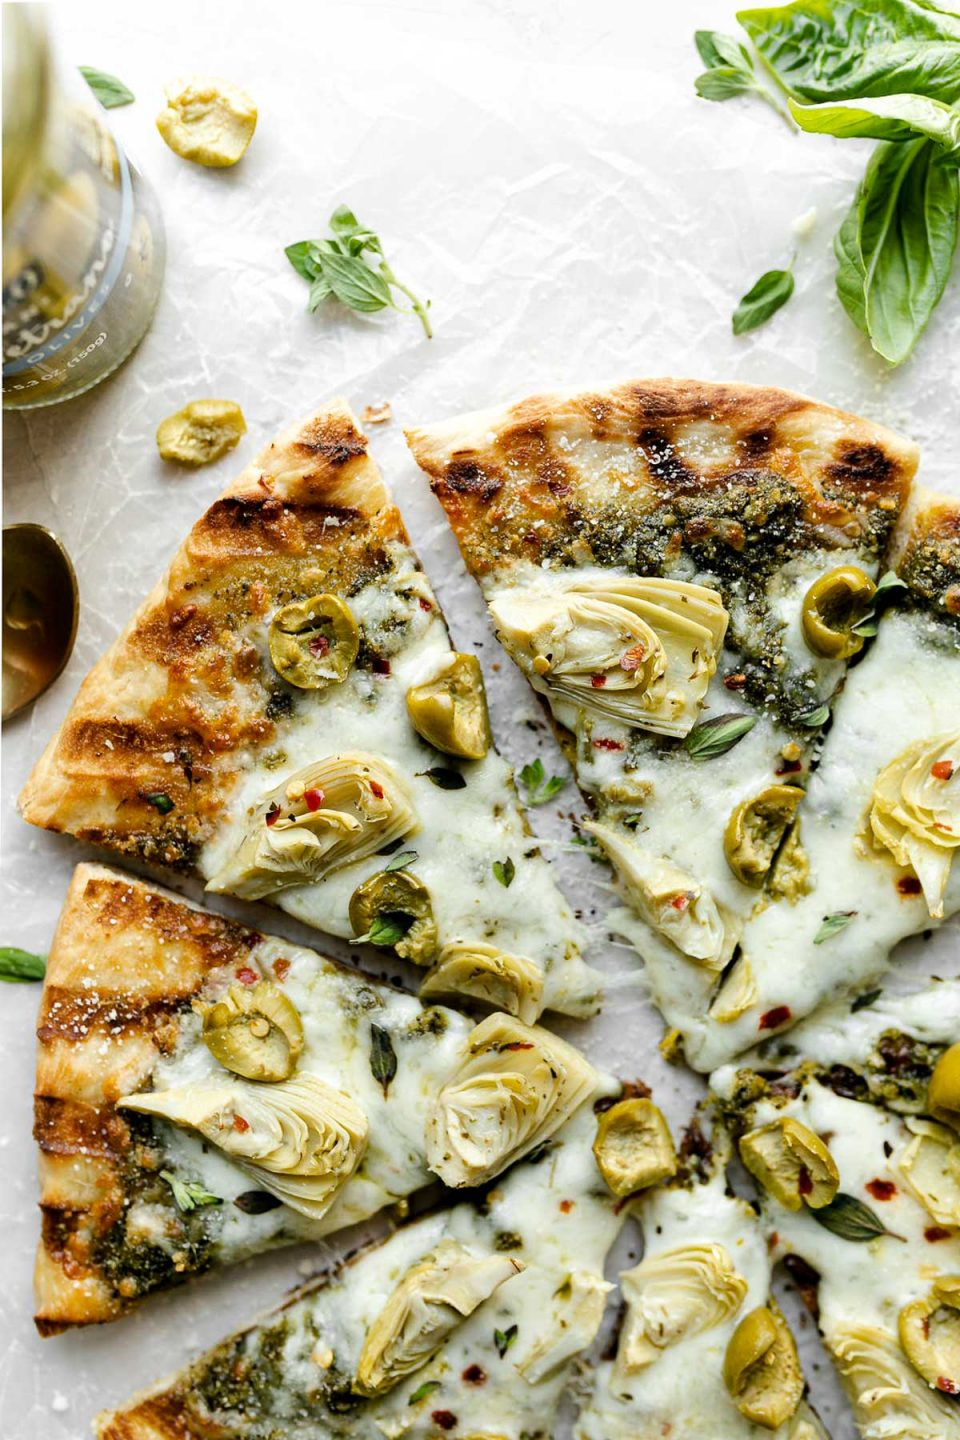 Grilled pizza topped with pesto, artichokes, & castelvetrano olives. The pizza sits atop a white surface, surrounded by fresh basil & a jar of DeLallo castelvetrano olives.